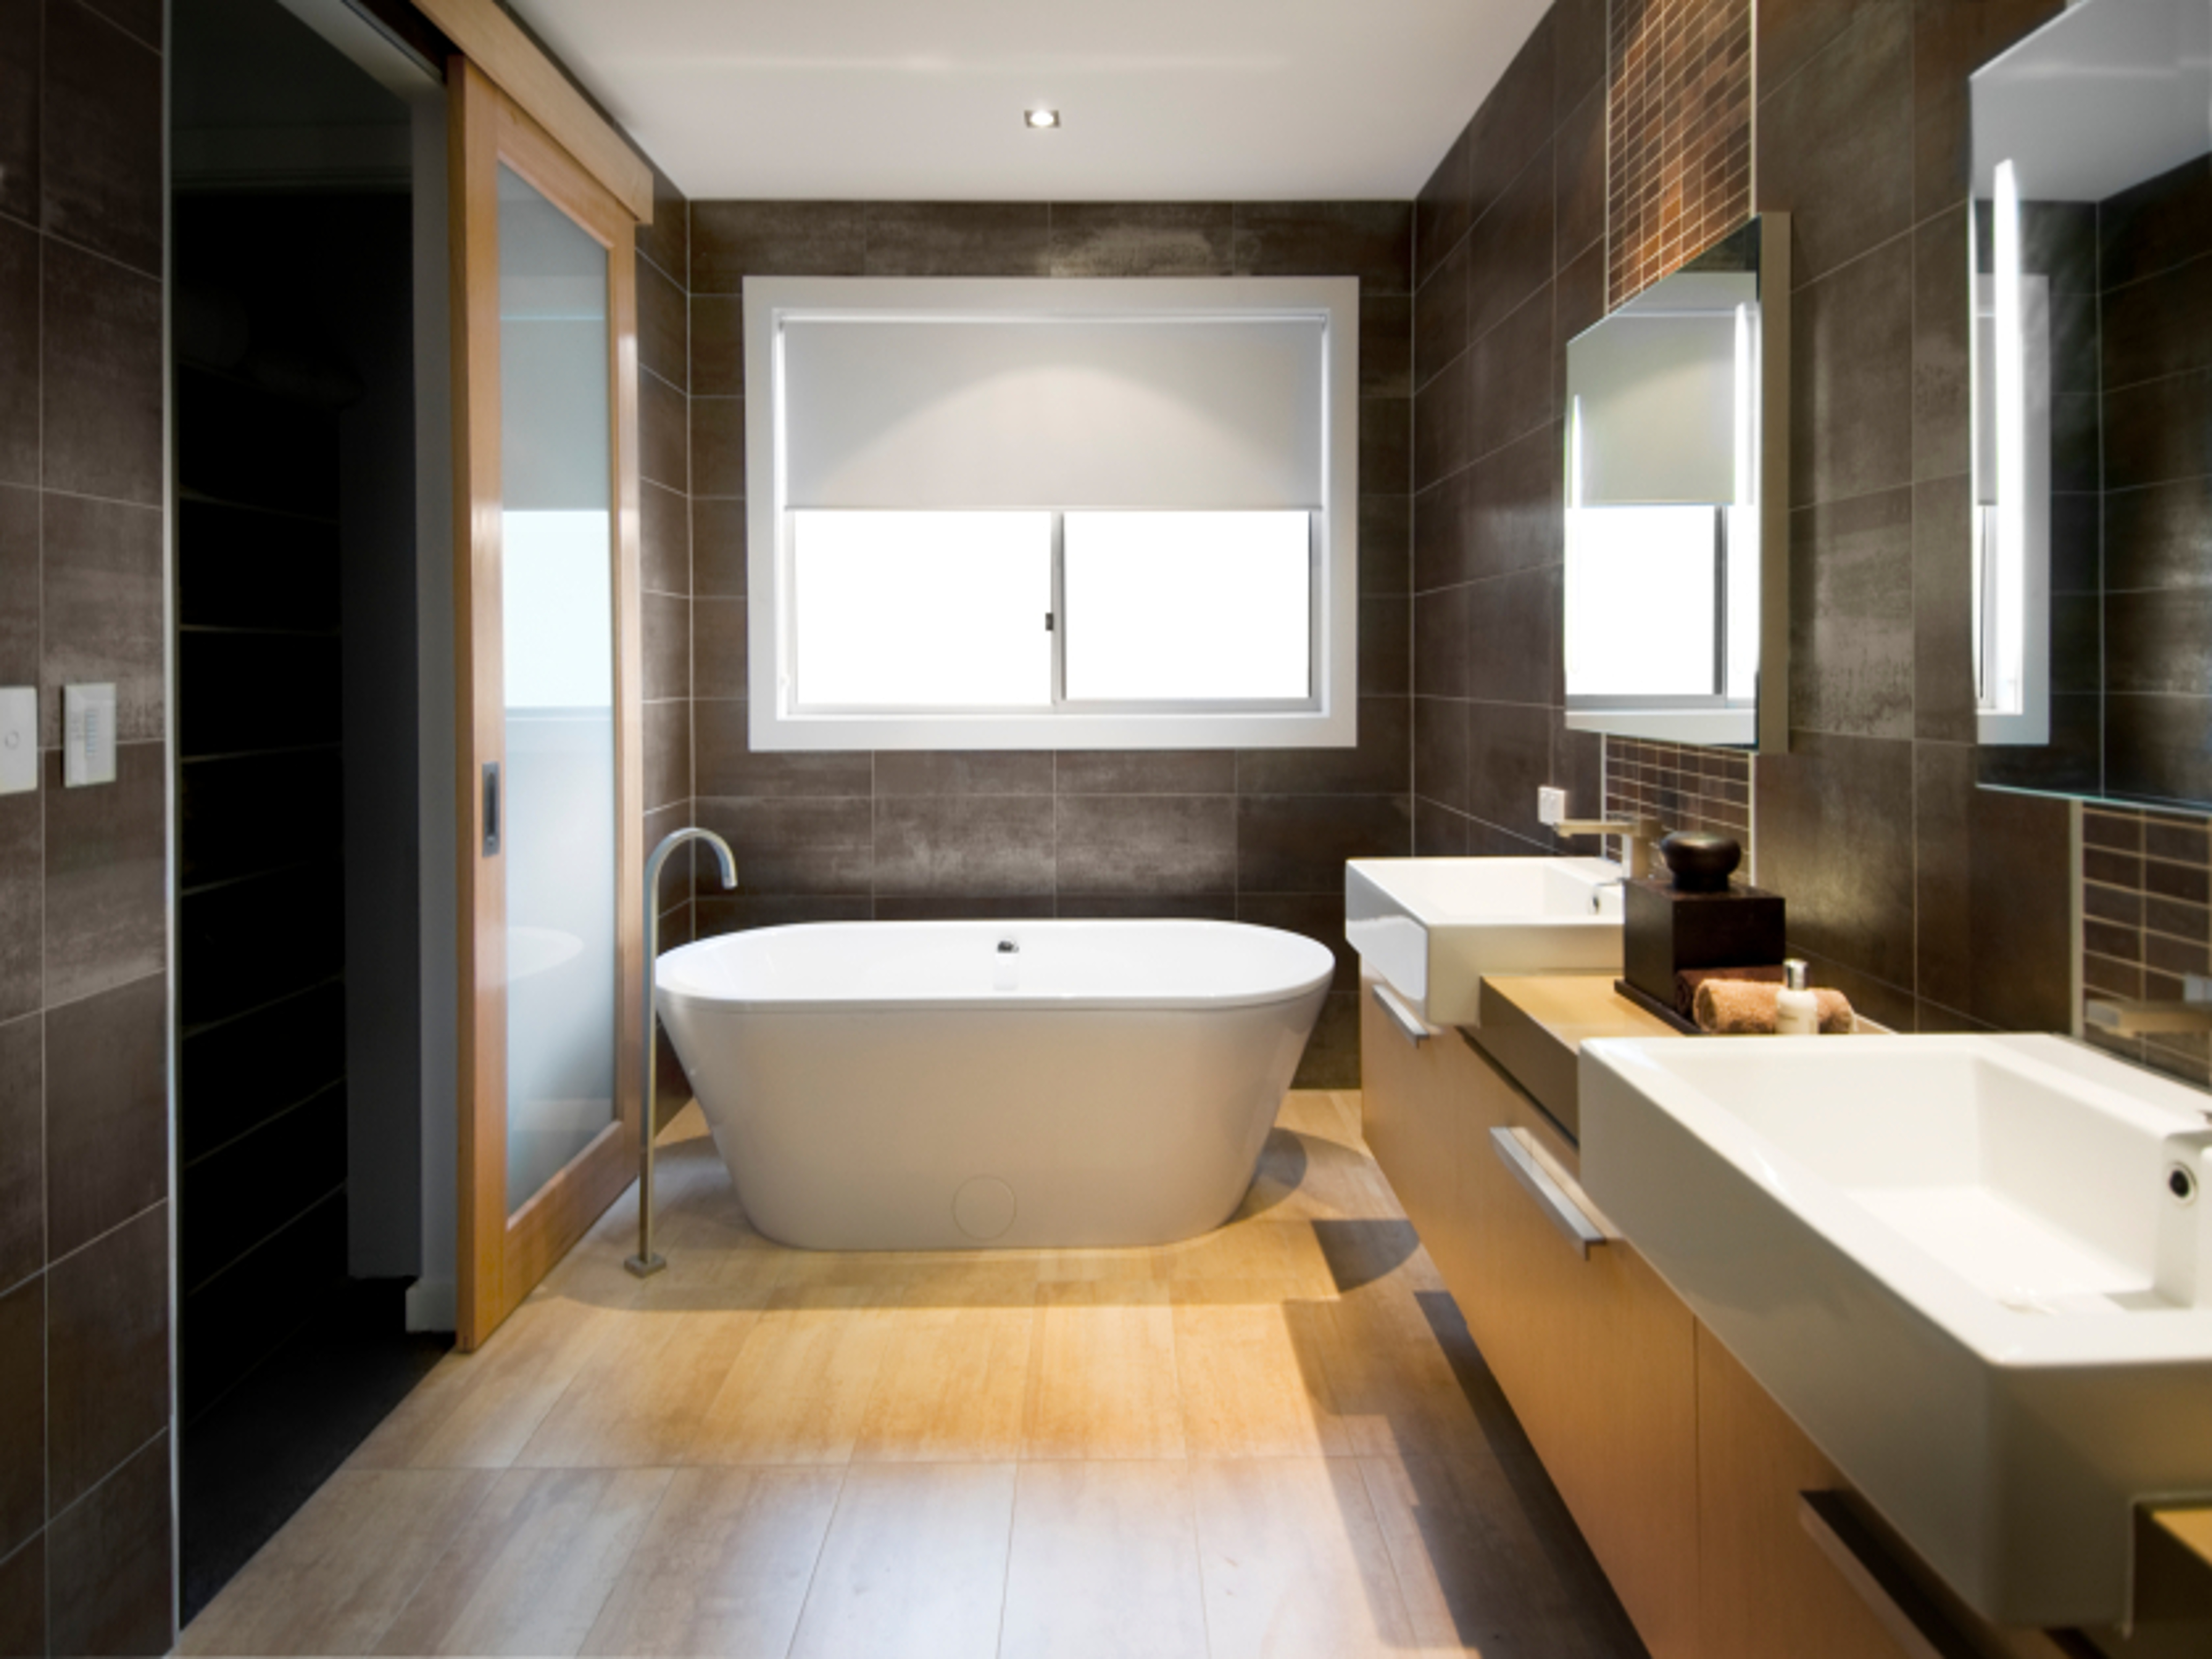 Australian Luxury bathroom with brown tiles and hardwood floor, focusing on a free standing bath. Clipping path around the windows and reflections in mirror/door.